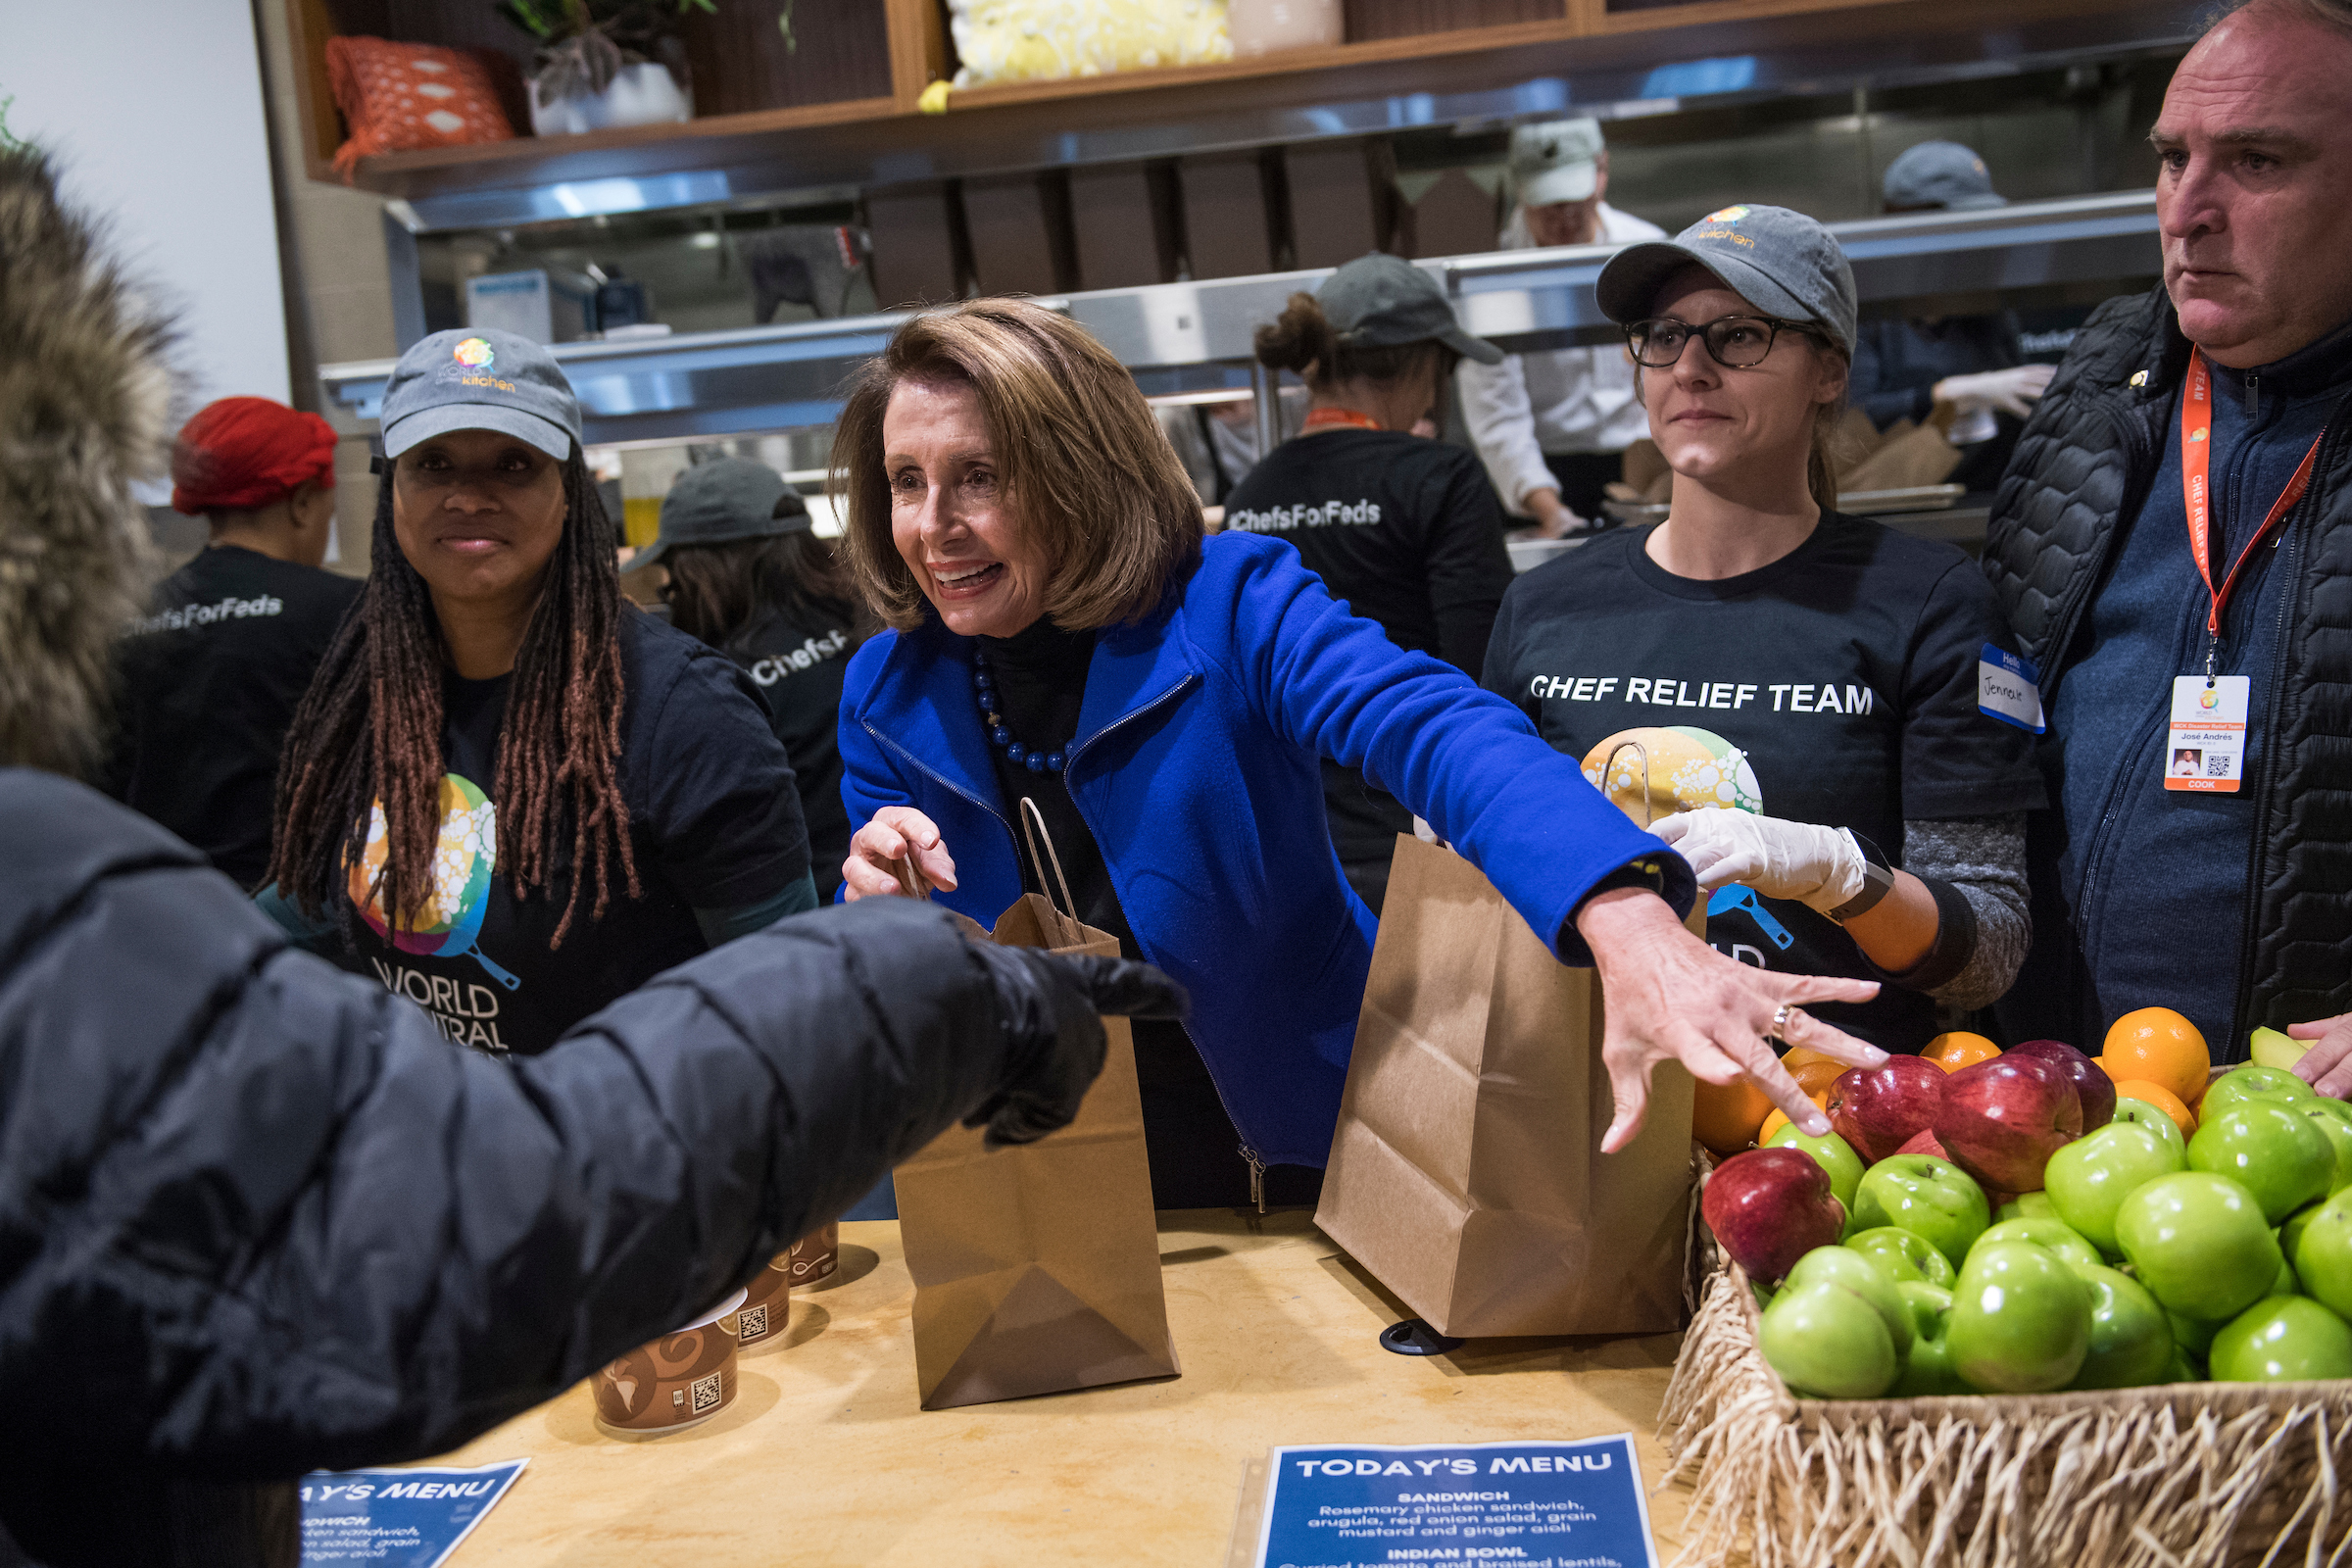 Speaker Nancy Pelosi, D-Calif., and chef Jose Andres, right, serve free meals to federal workers who have been affected by the partial government shutdown at Andres' World Central Kitchen in downtown Washington on Tuesday, Jan. 22, 2019. (Tom Williams/CQ Roll Call)